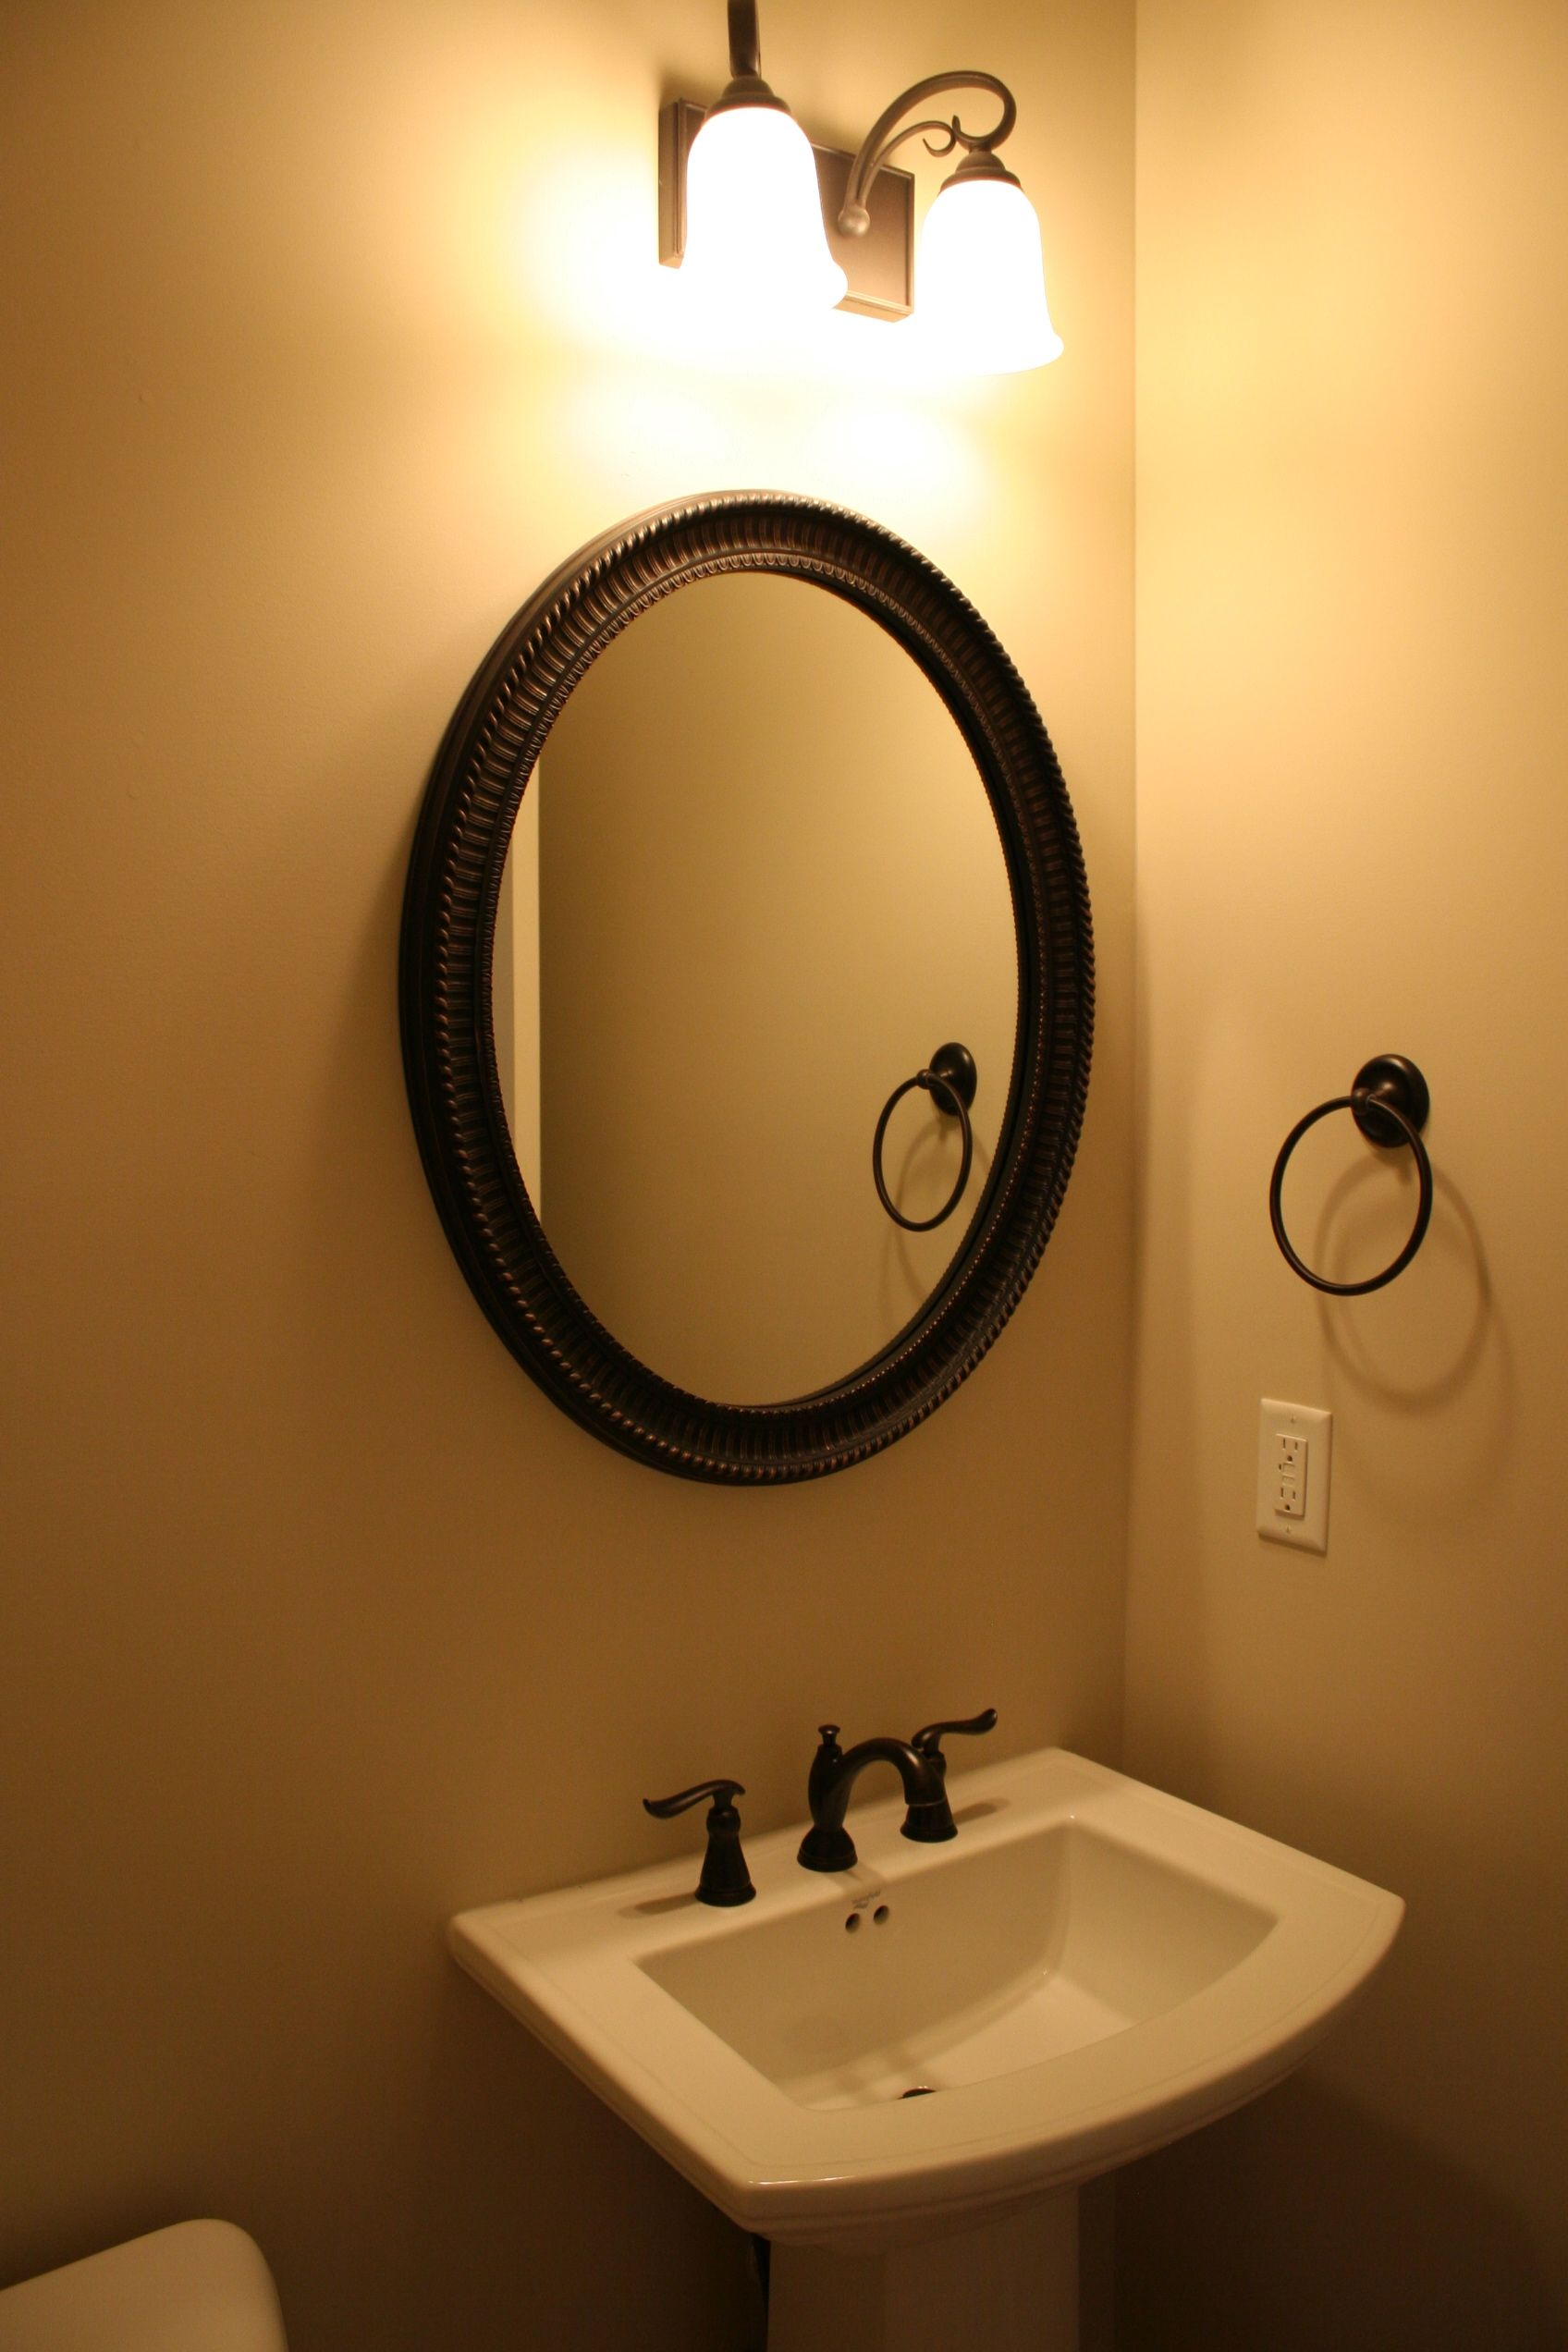 Bathroom featured in The Tranquility Creek By Four Seasons Contractors in Rocky Mount, NC